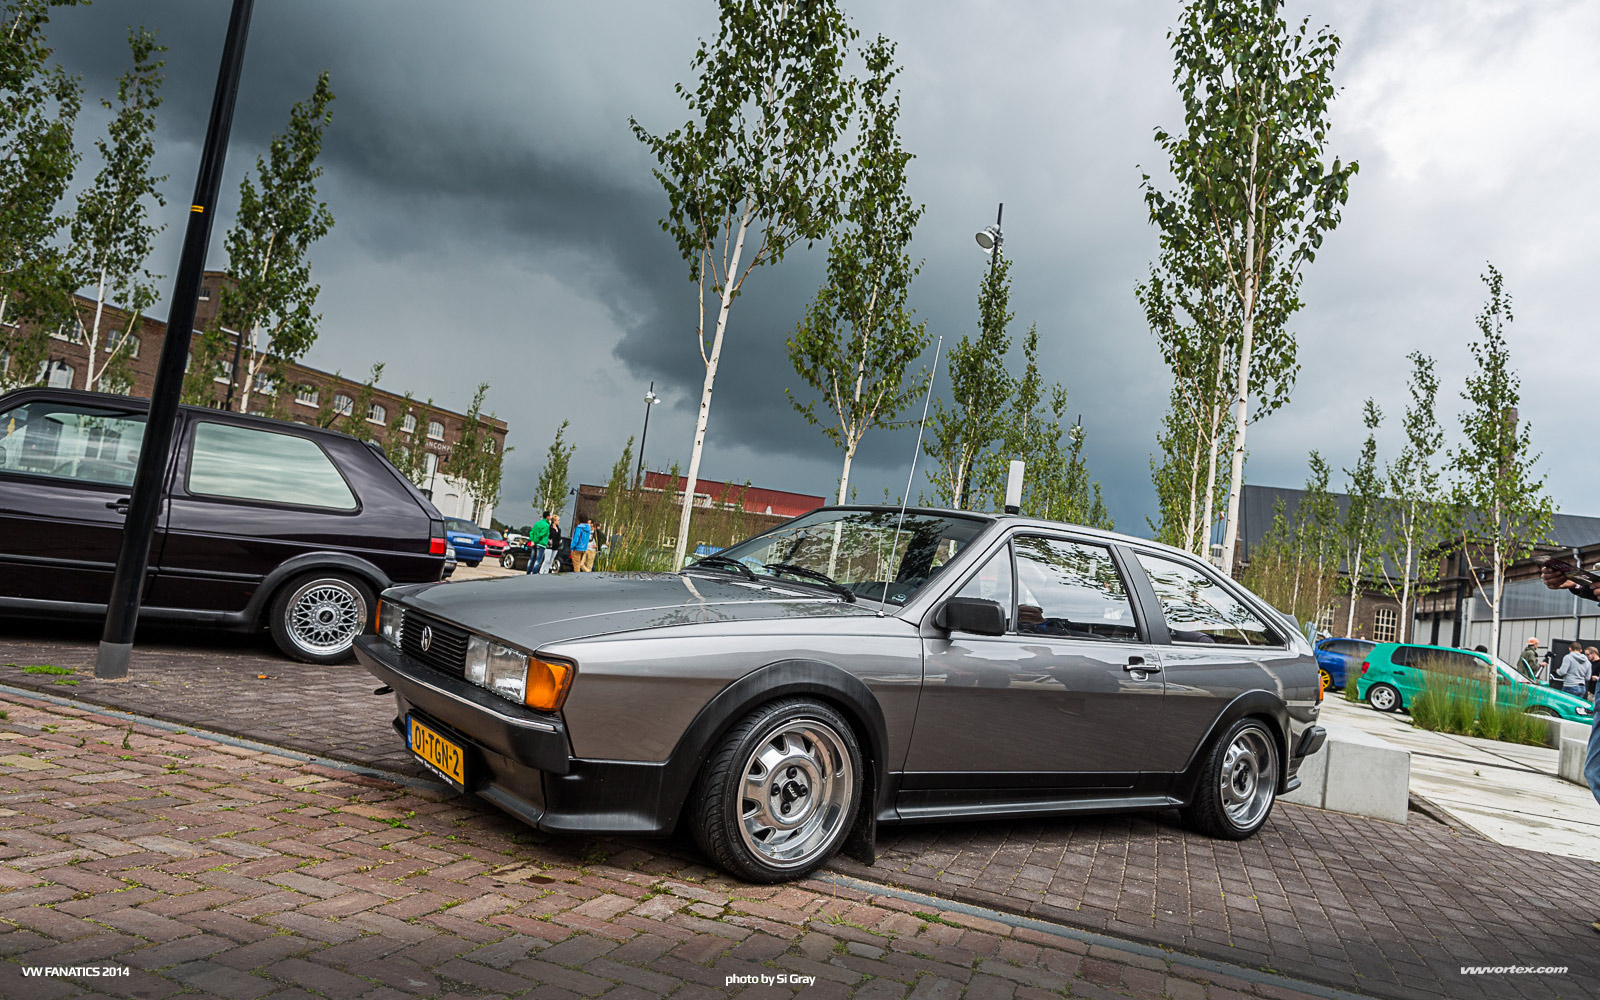 VWFanatics-2014-Si-Gray-484